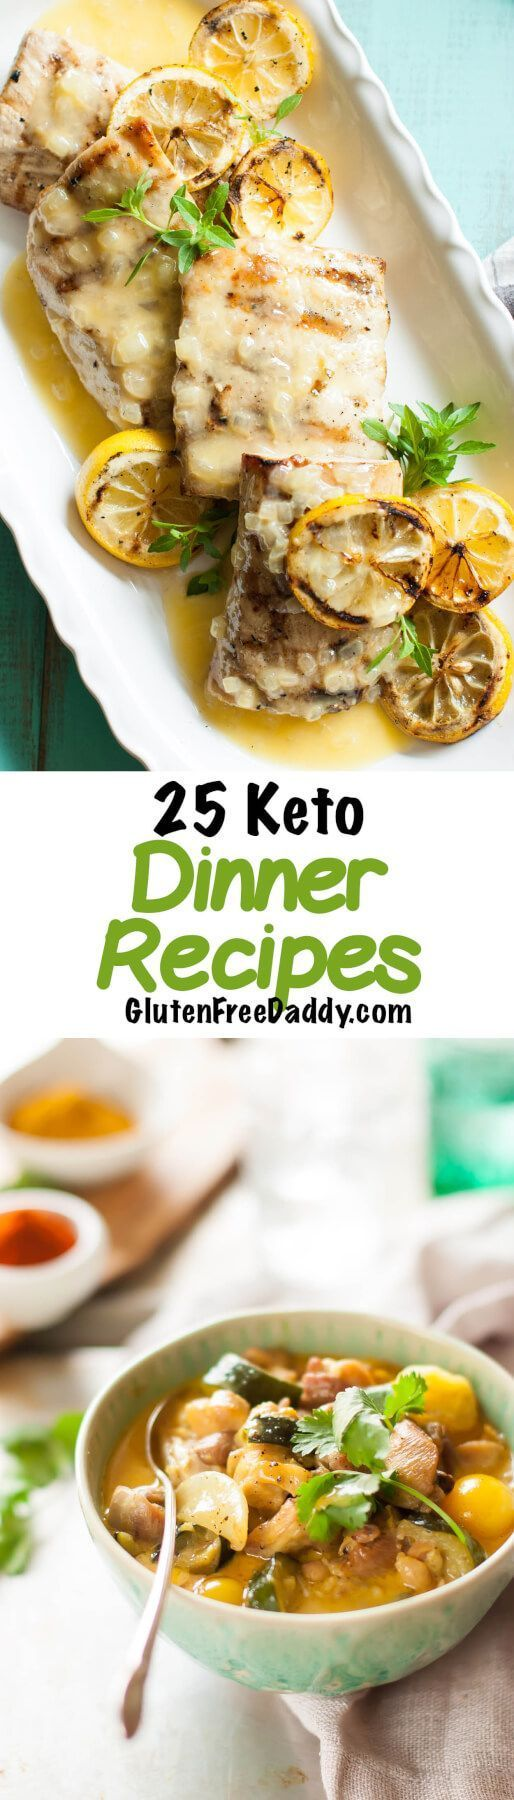 Keto Dinner Recipes {Low Carb, Gluten-Free}